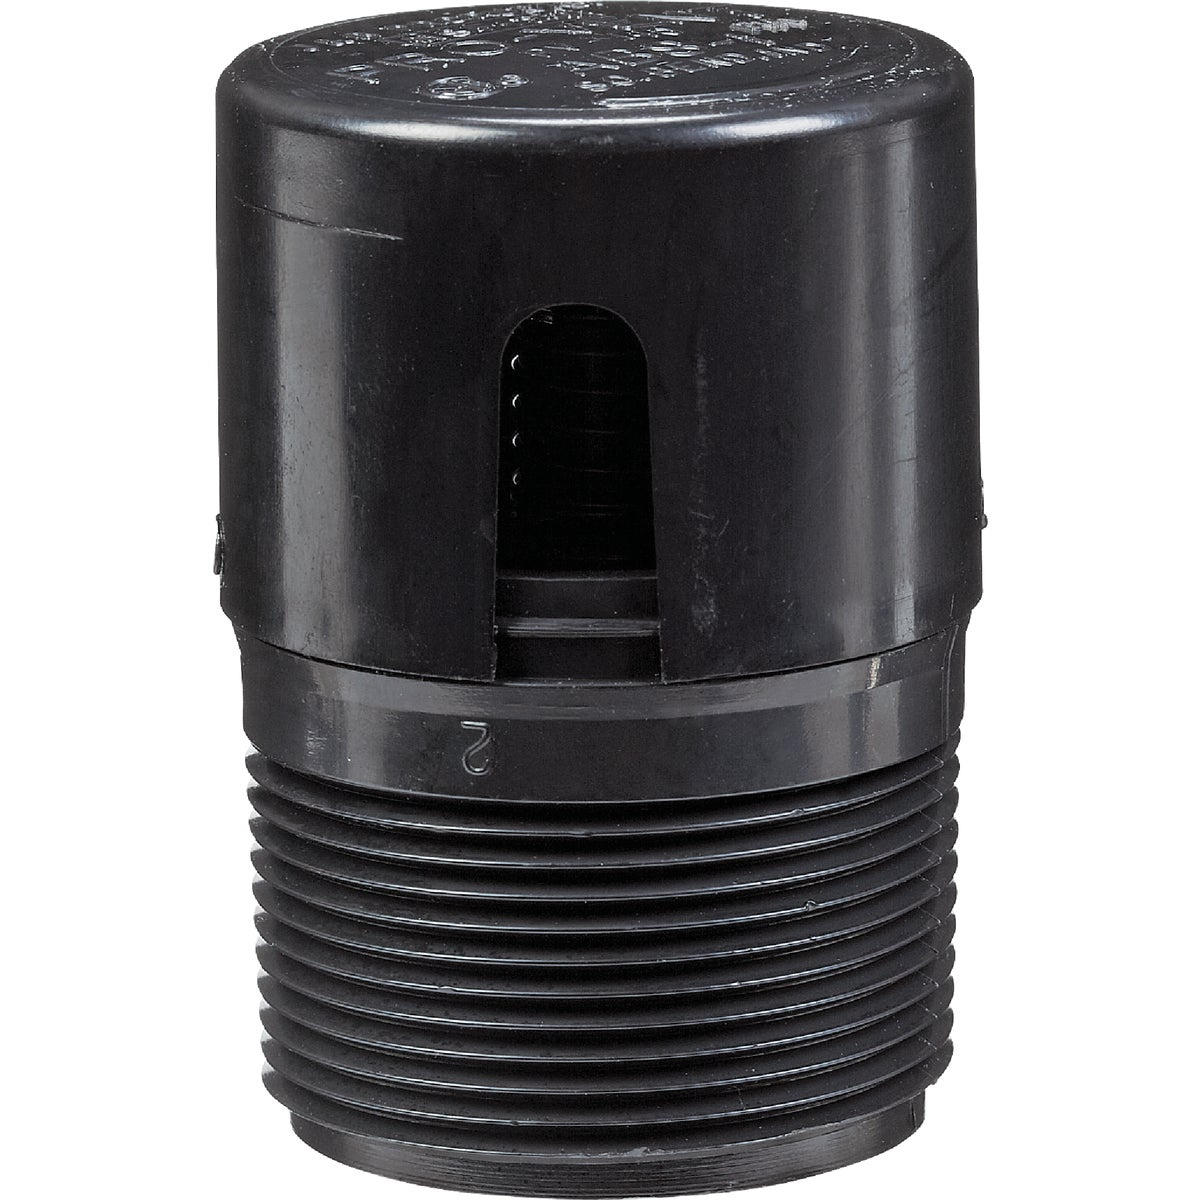 AUTO VENT VALVE - P21-150 by Jones Stephens Corp